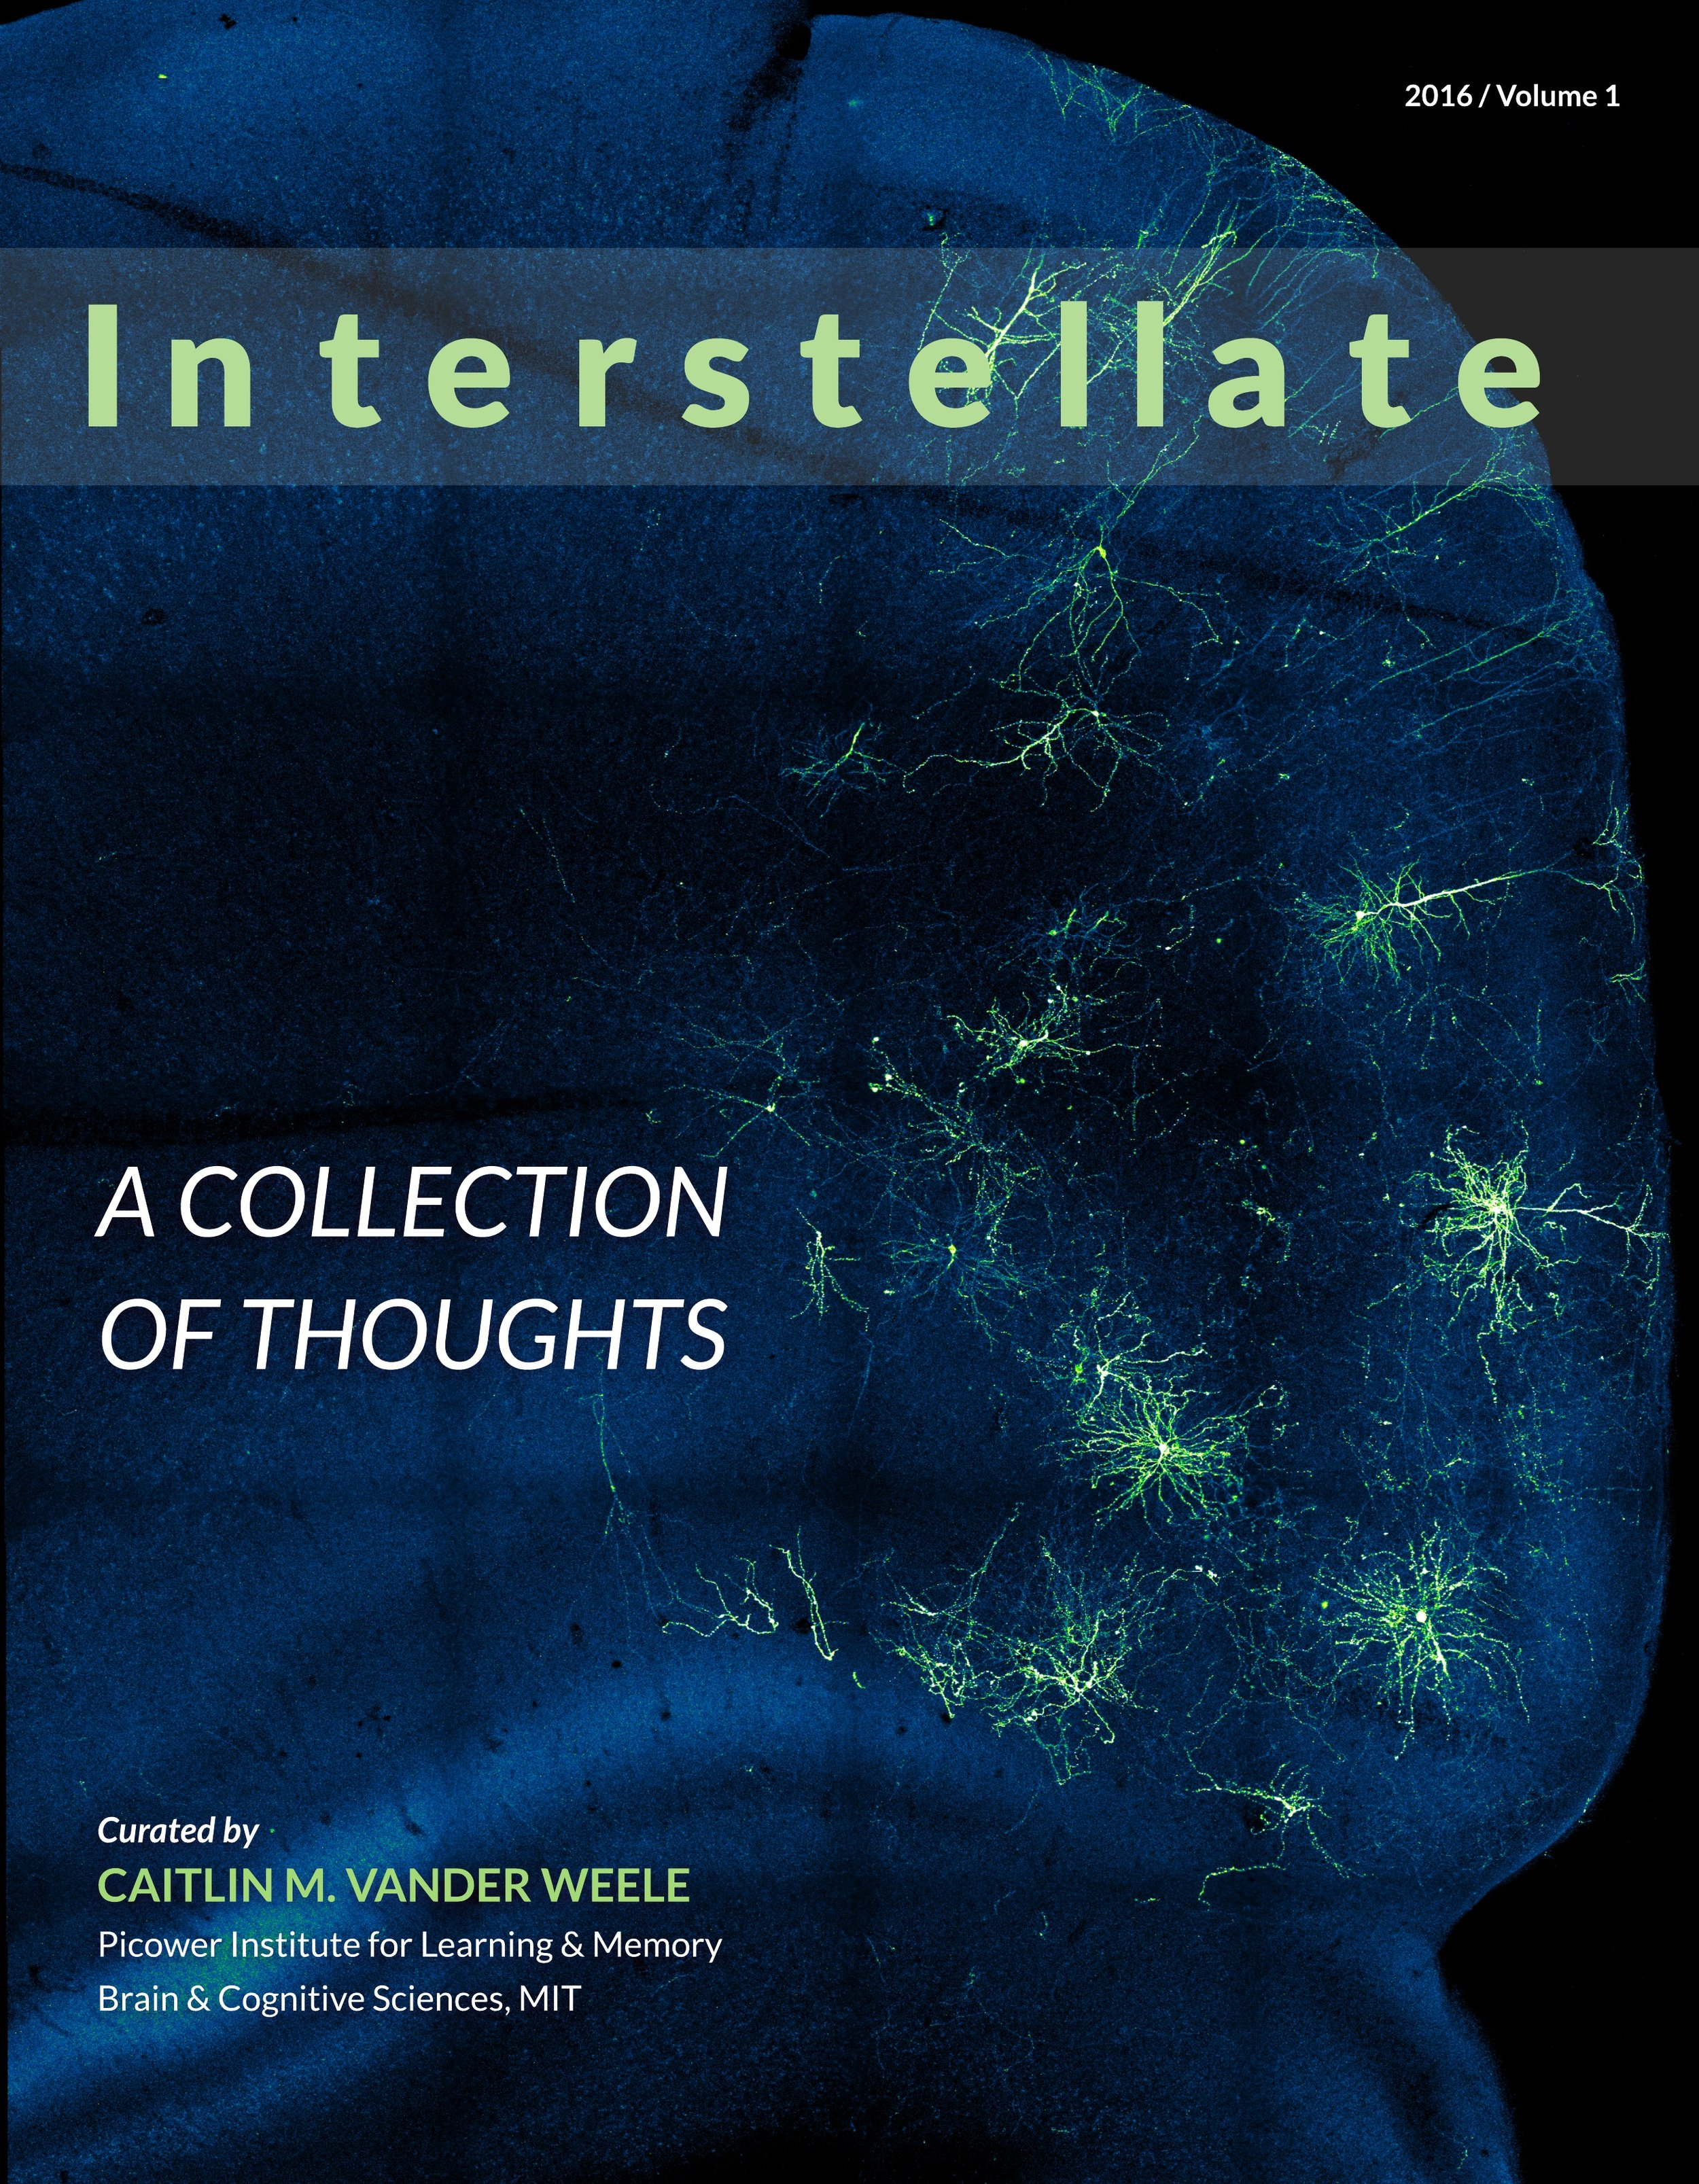 Interstellate_Volume1 - Cover.jpeg